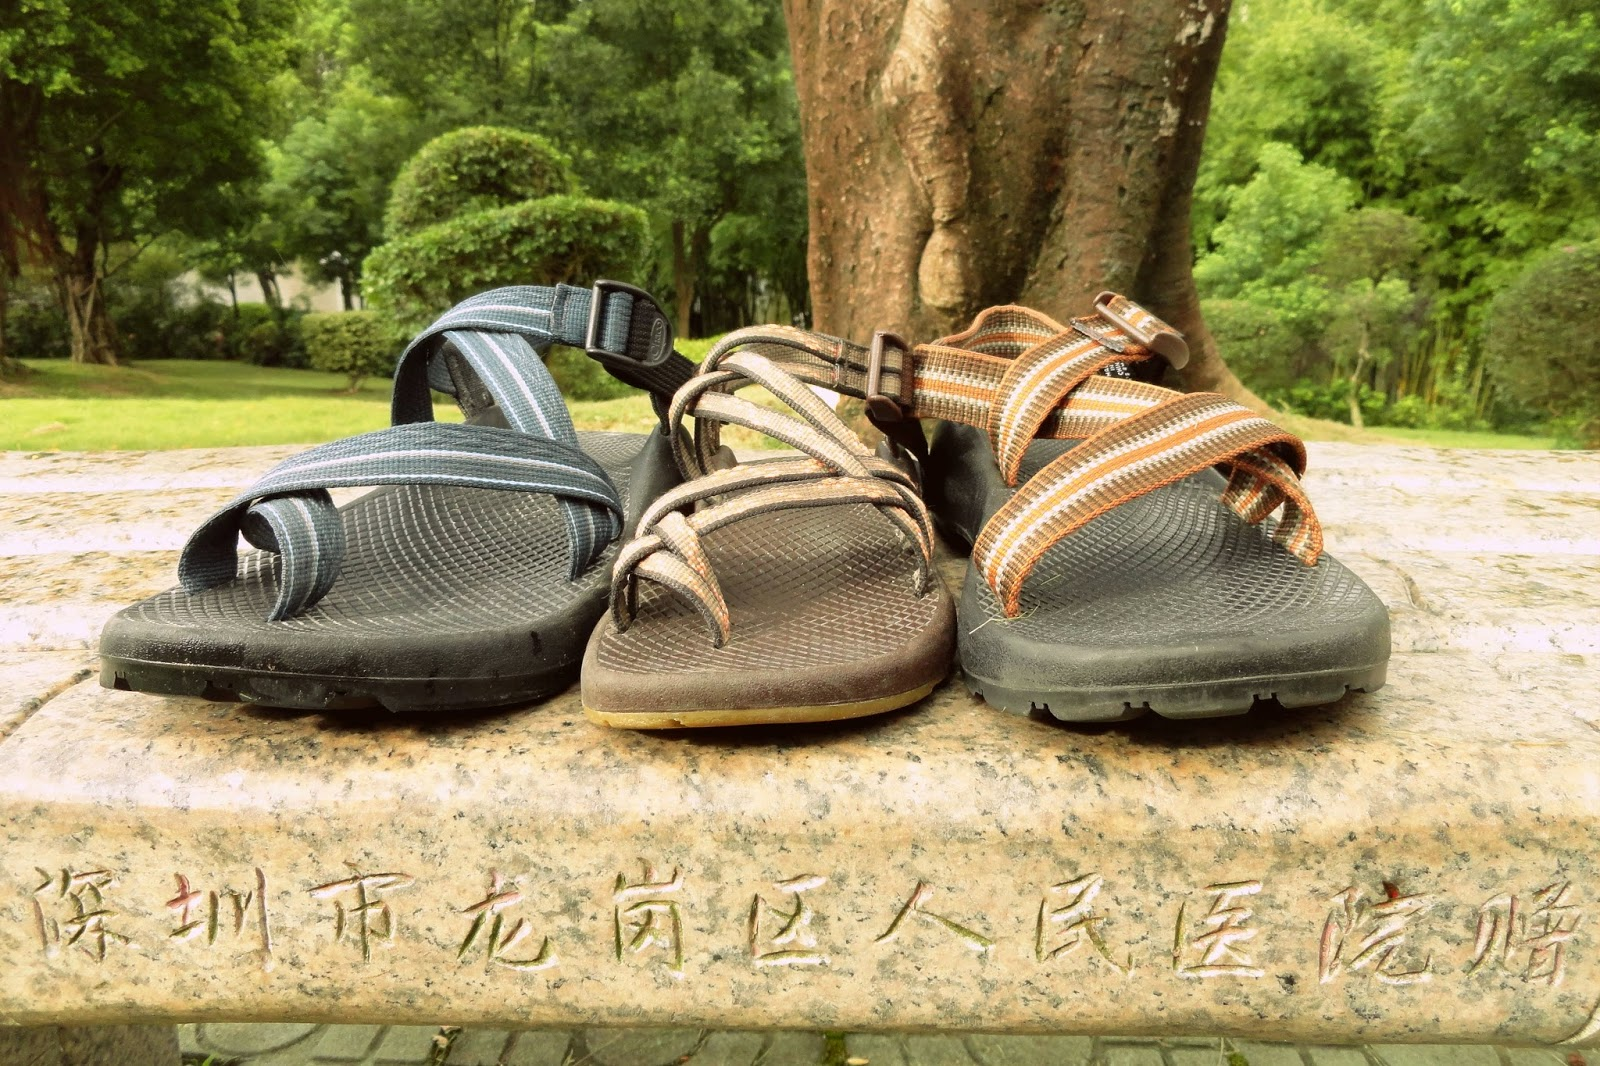 Chacos in China